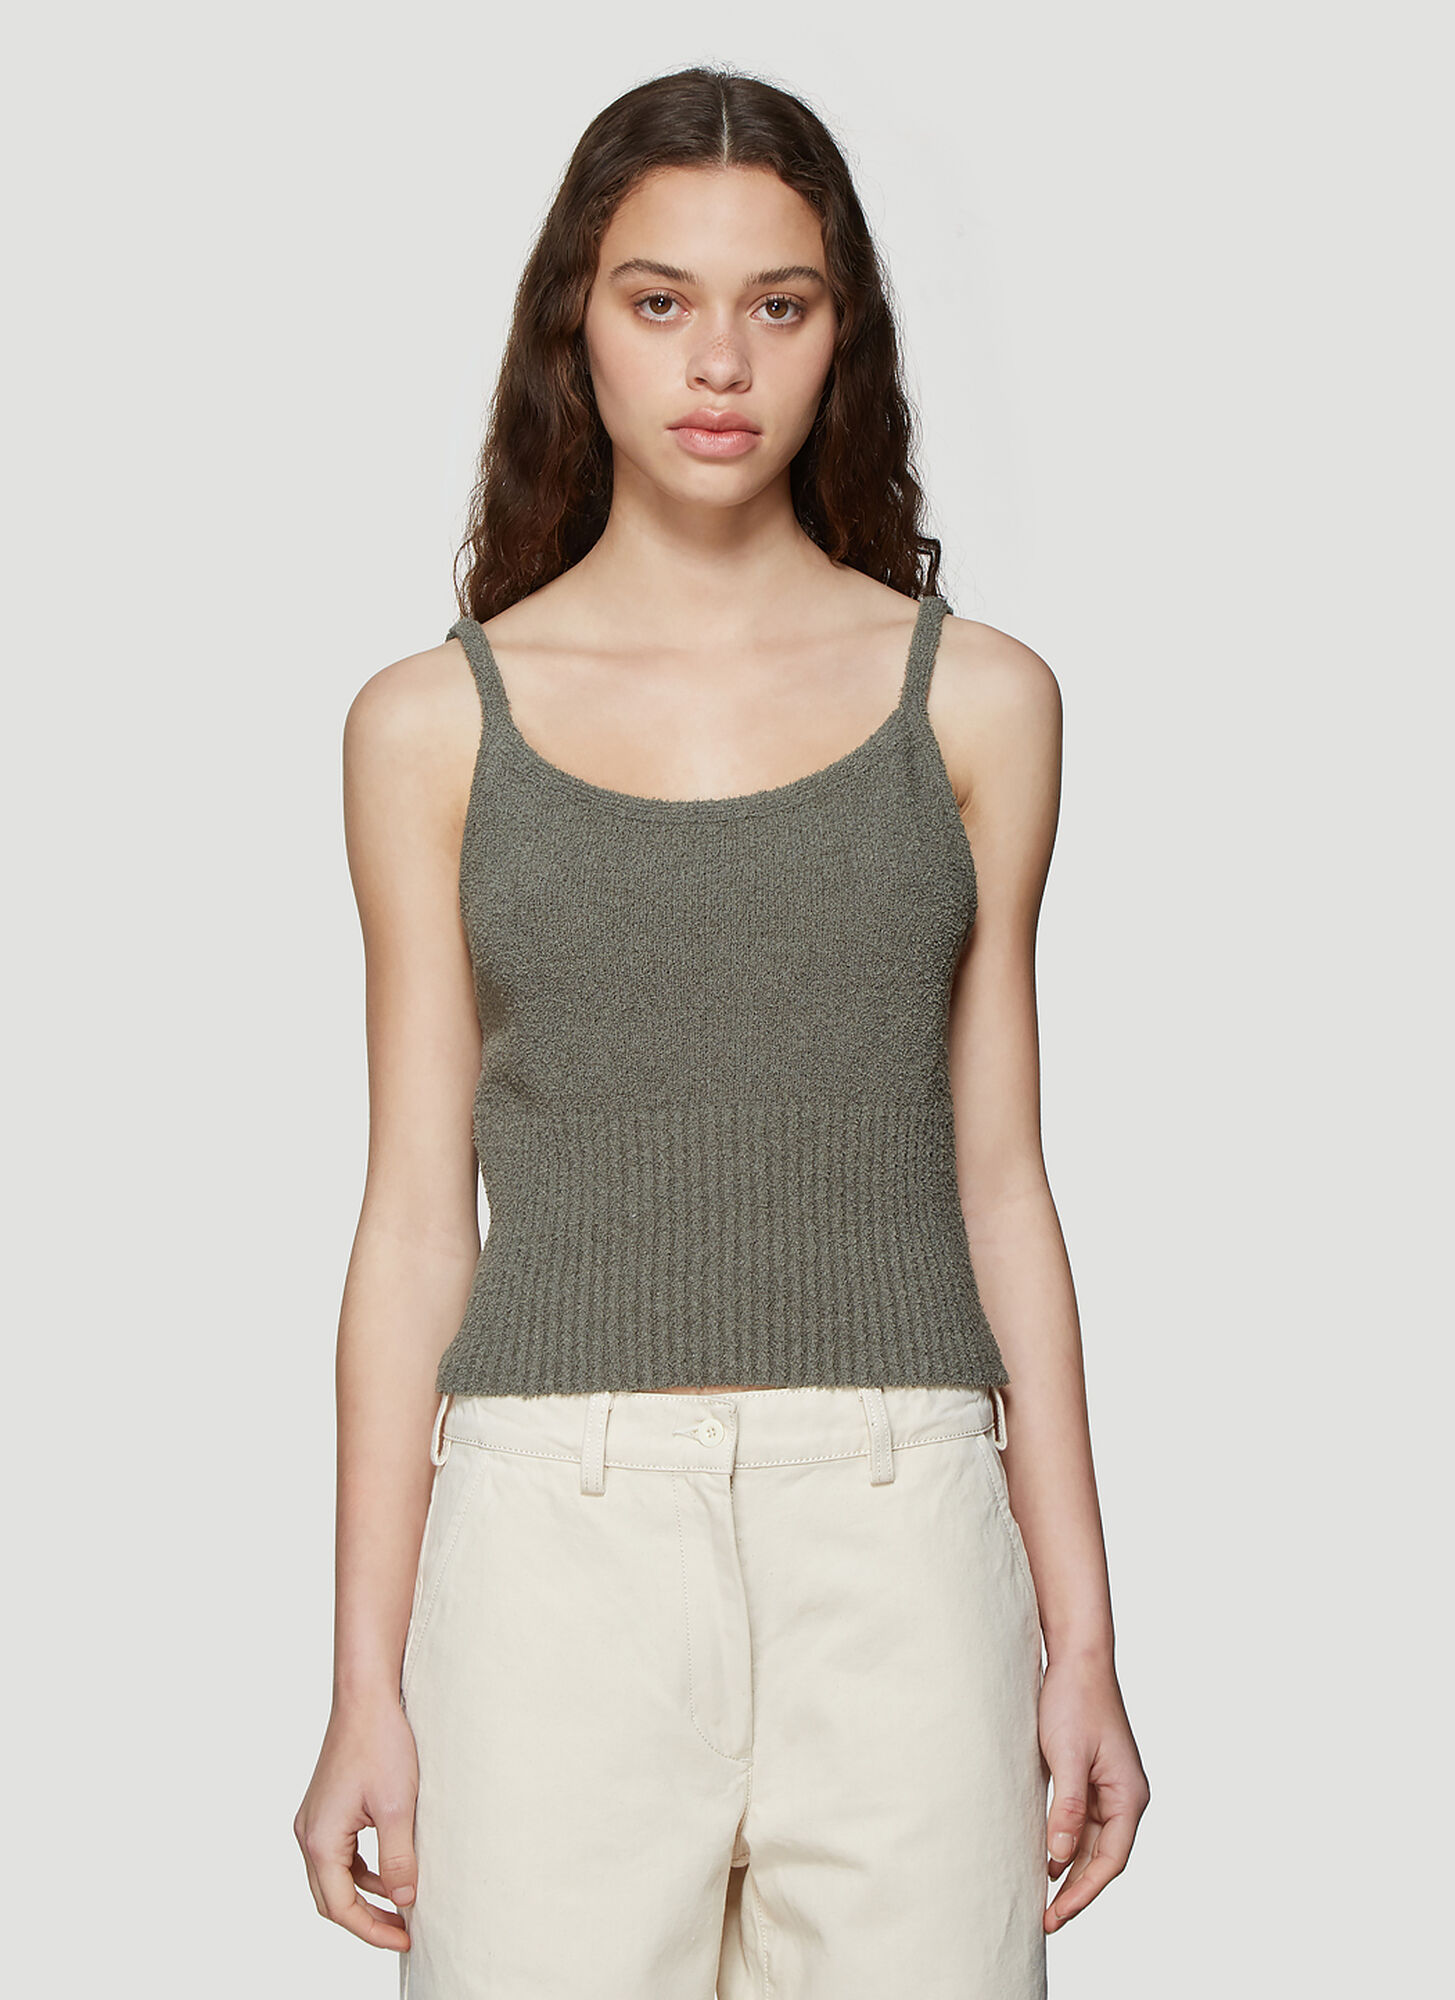 Our Legacy Peyote Sleeveless Top in Green